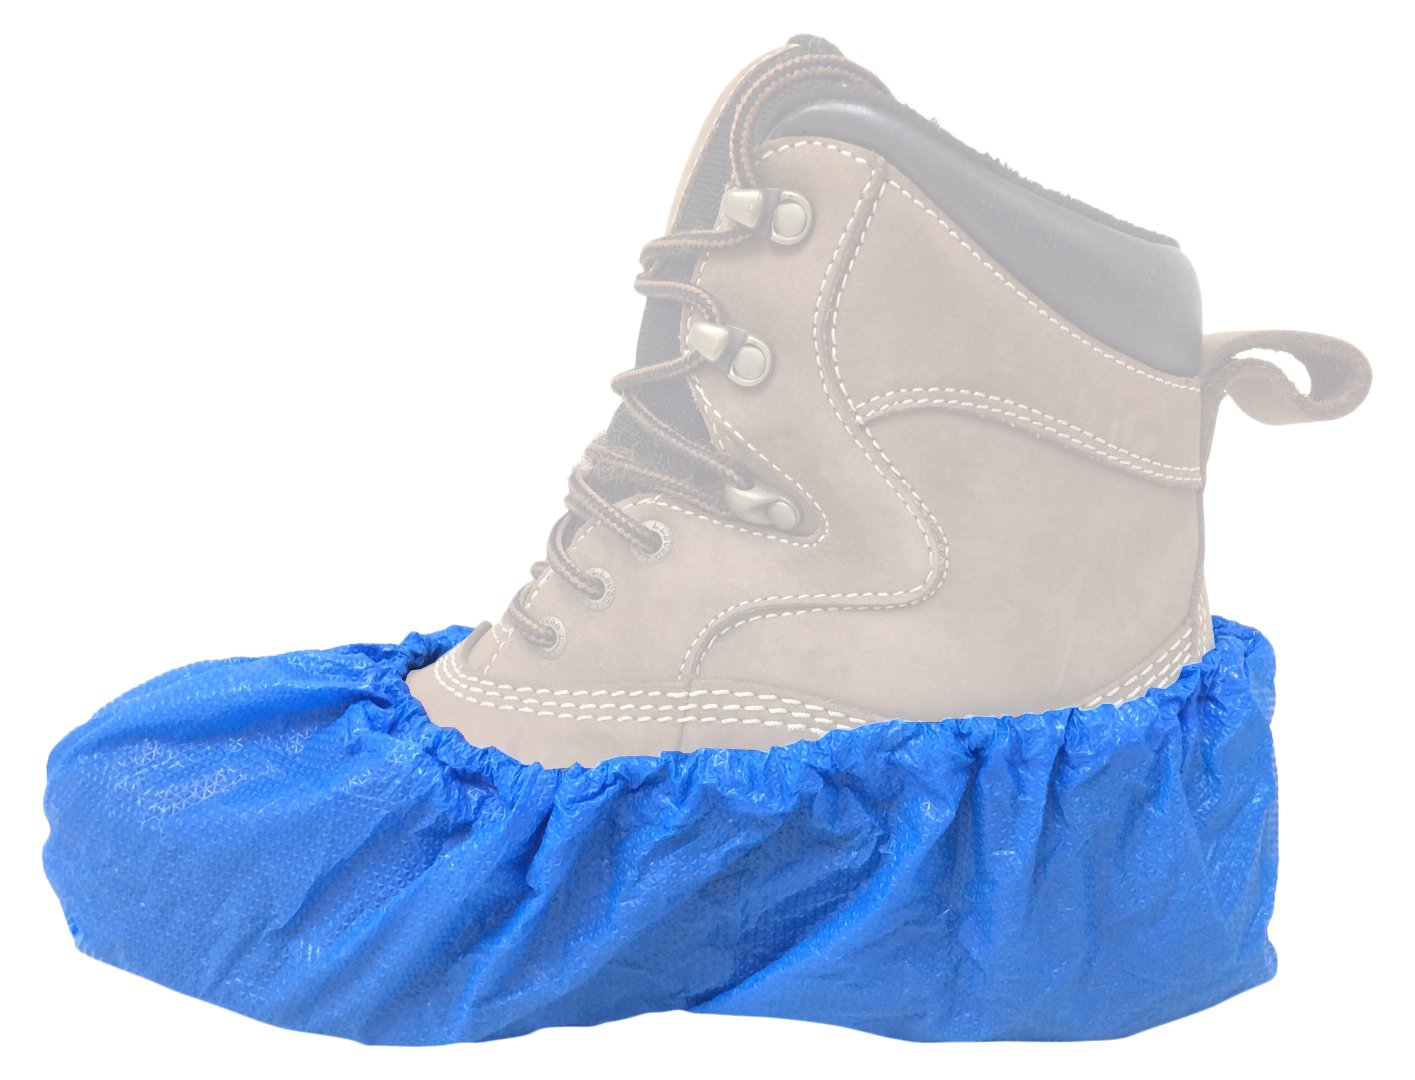 Zip-Up Products Skid Free Jobsite Shoe Covers - XL Disposable Slip-On Boot & Shoe Containment Sleeves - SC300XLB